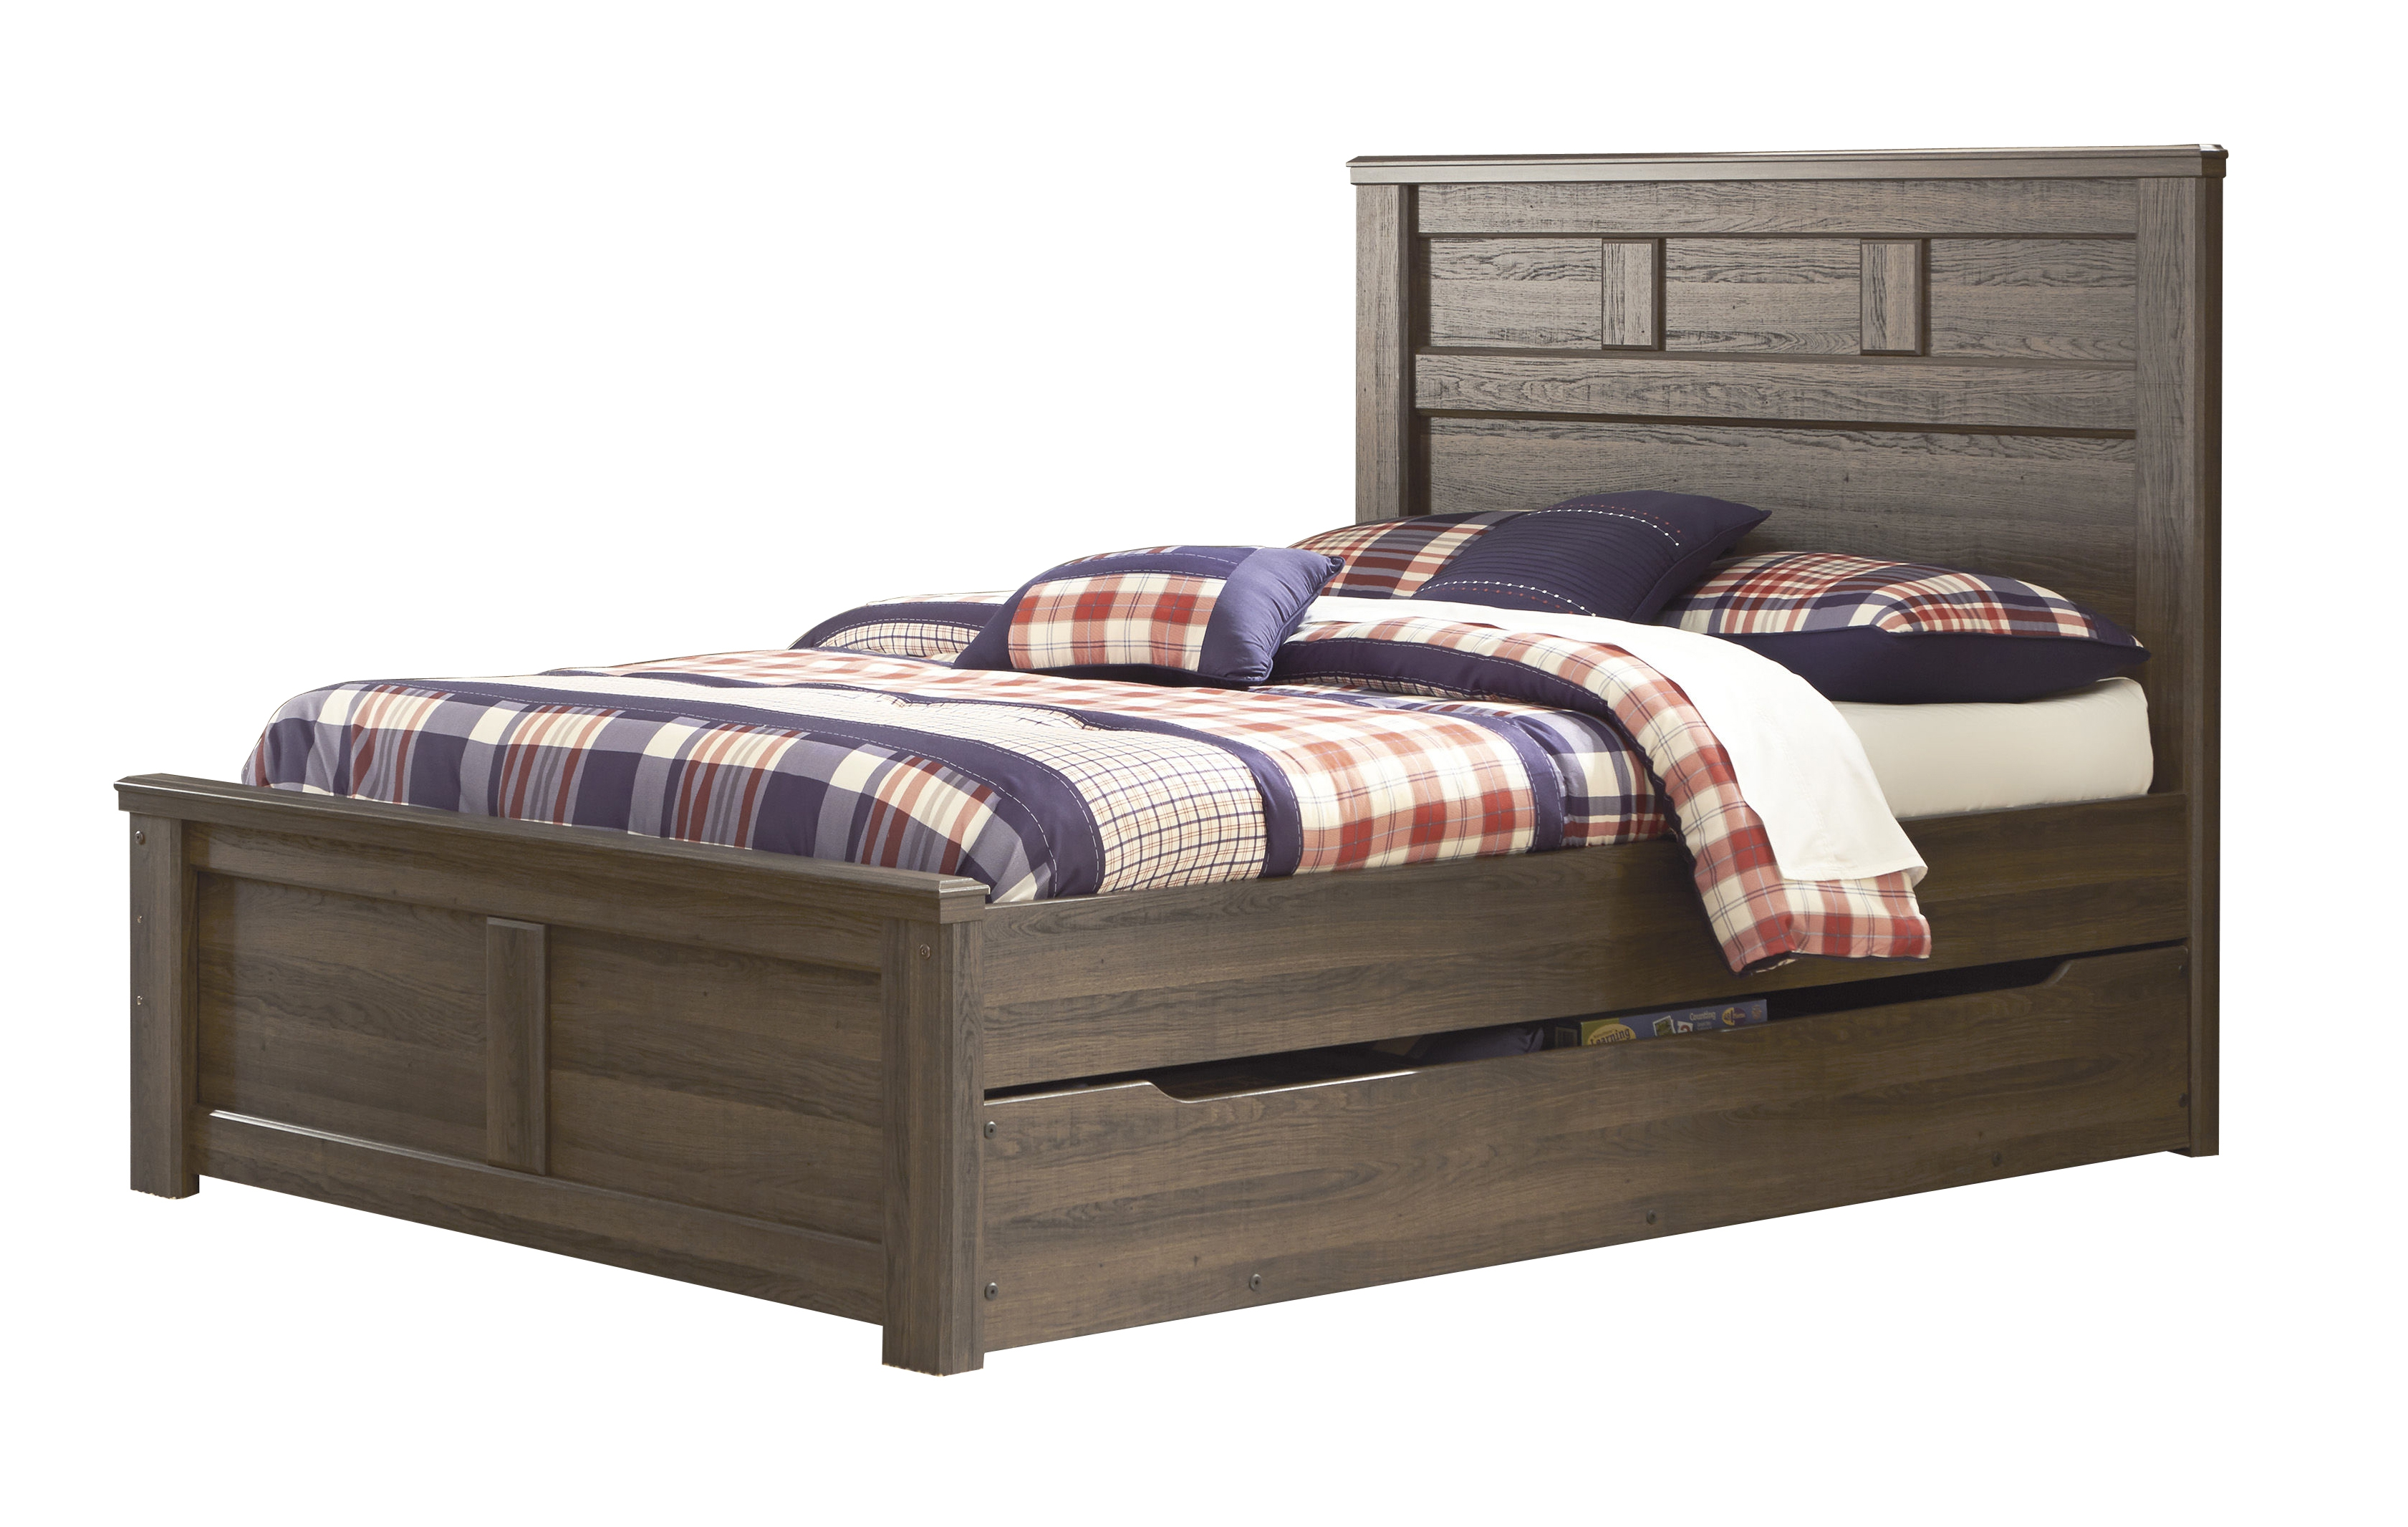 Ashley Furniture Juararo Full Panel Bed With Under Bed Storage The Classy Home